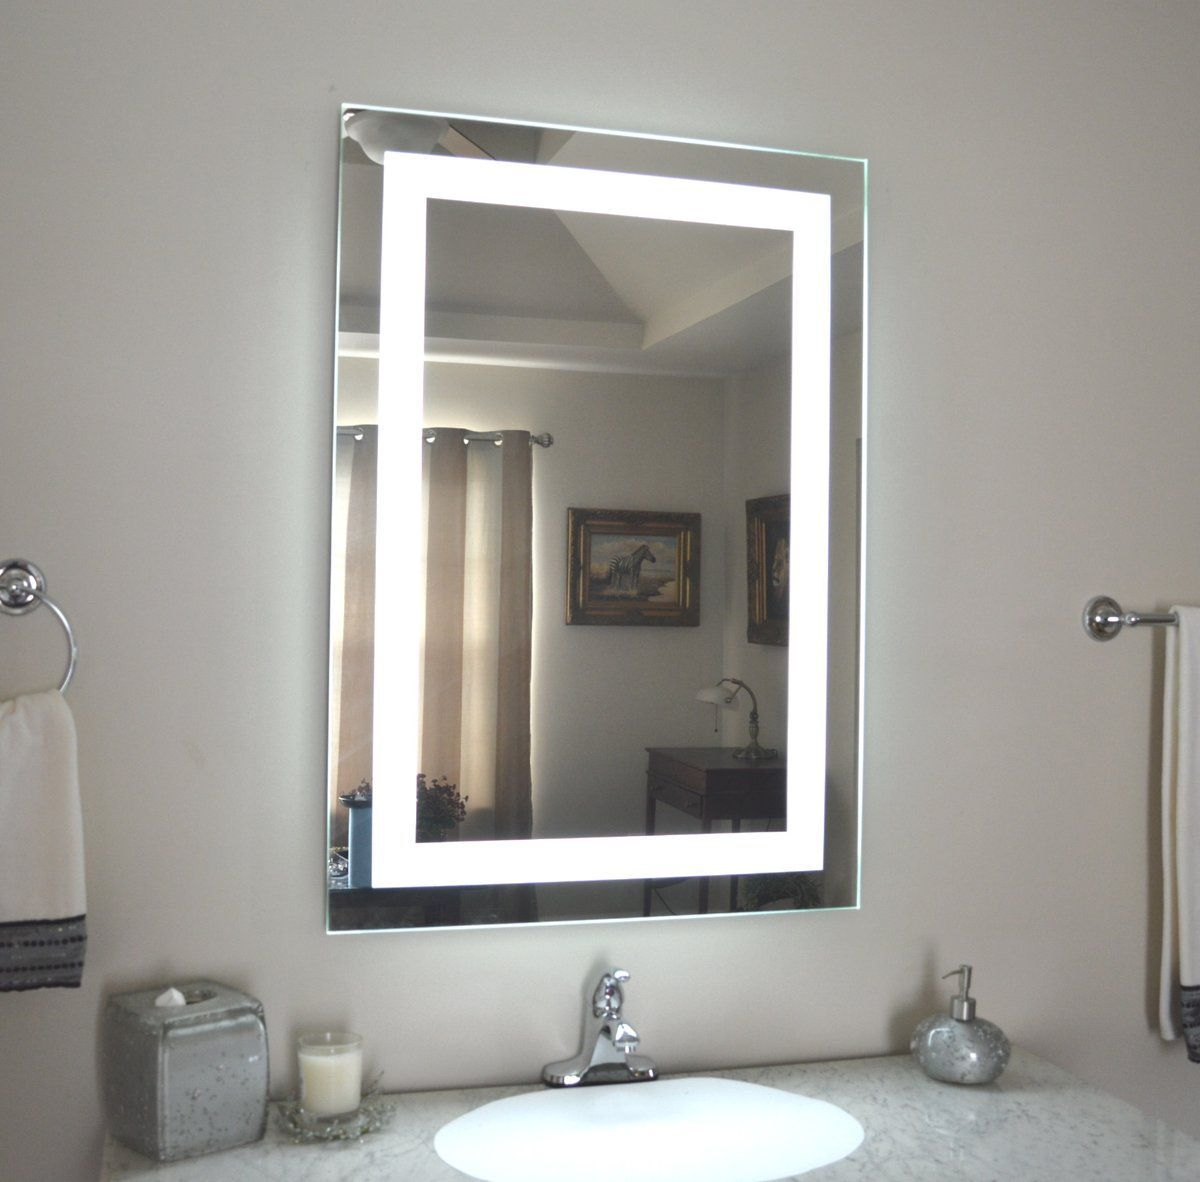 Front Lighted Led Bathroom Vanity Mirror 28 Zerkalo Dlya Makiyazha Zerkalo Predmety Interera